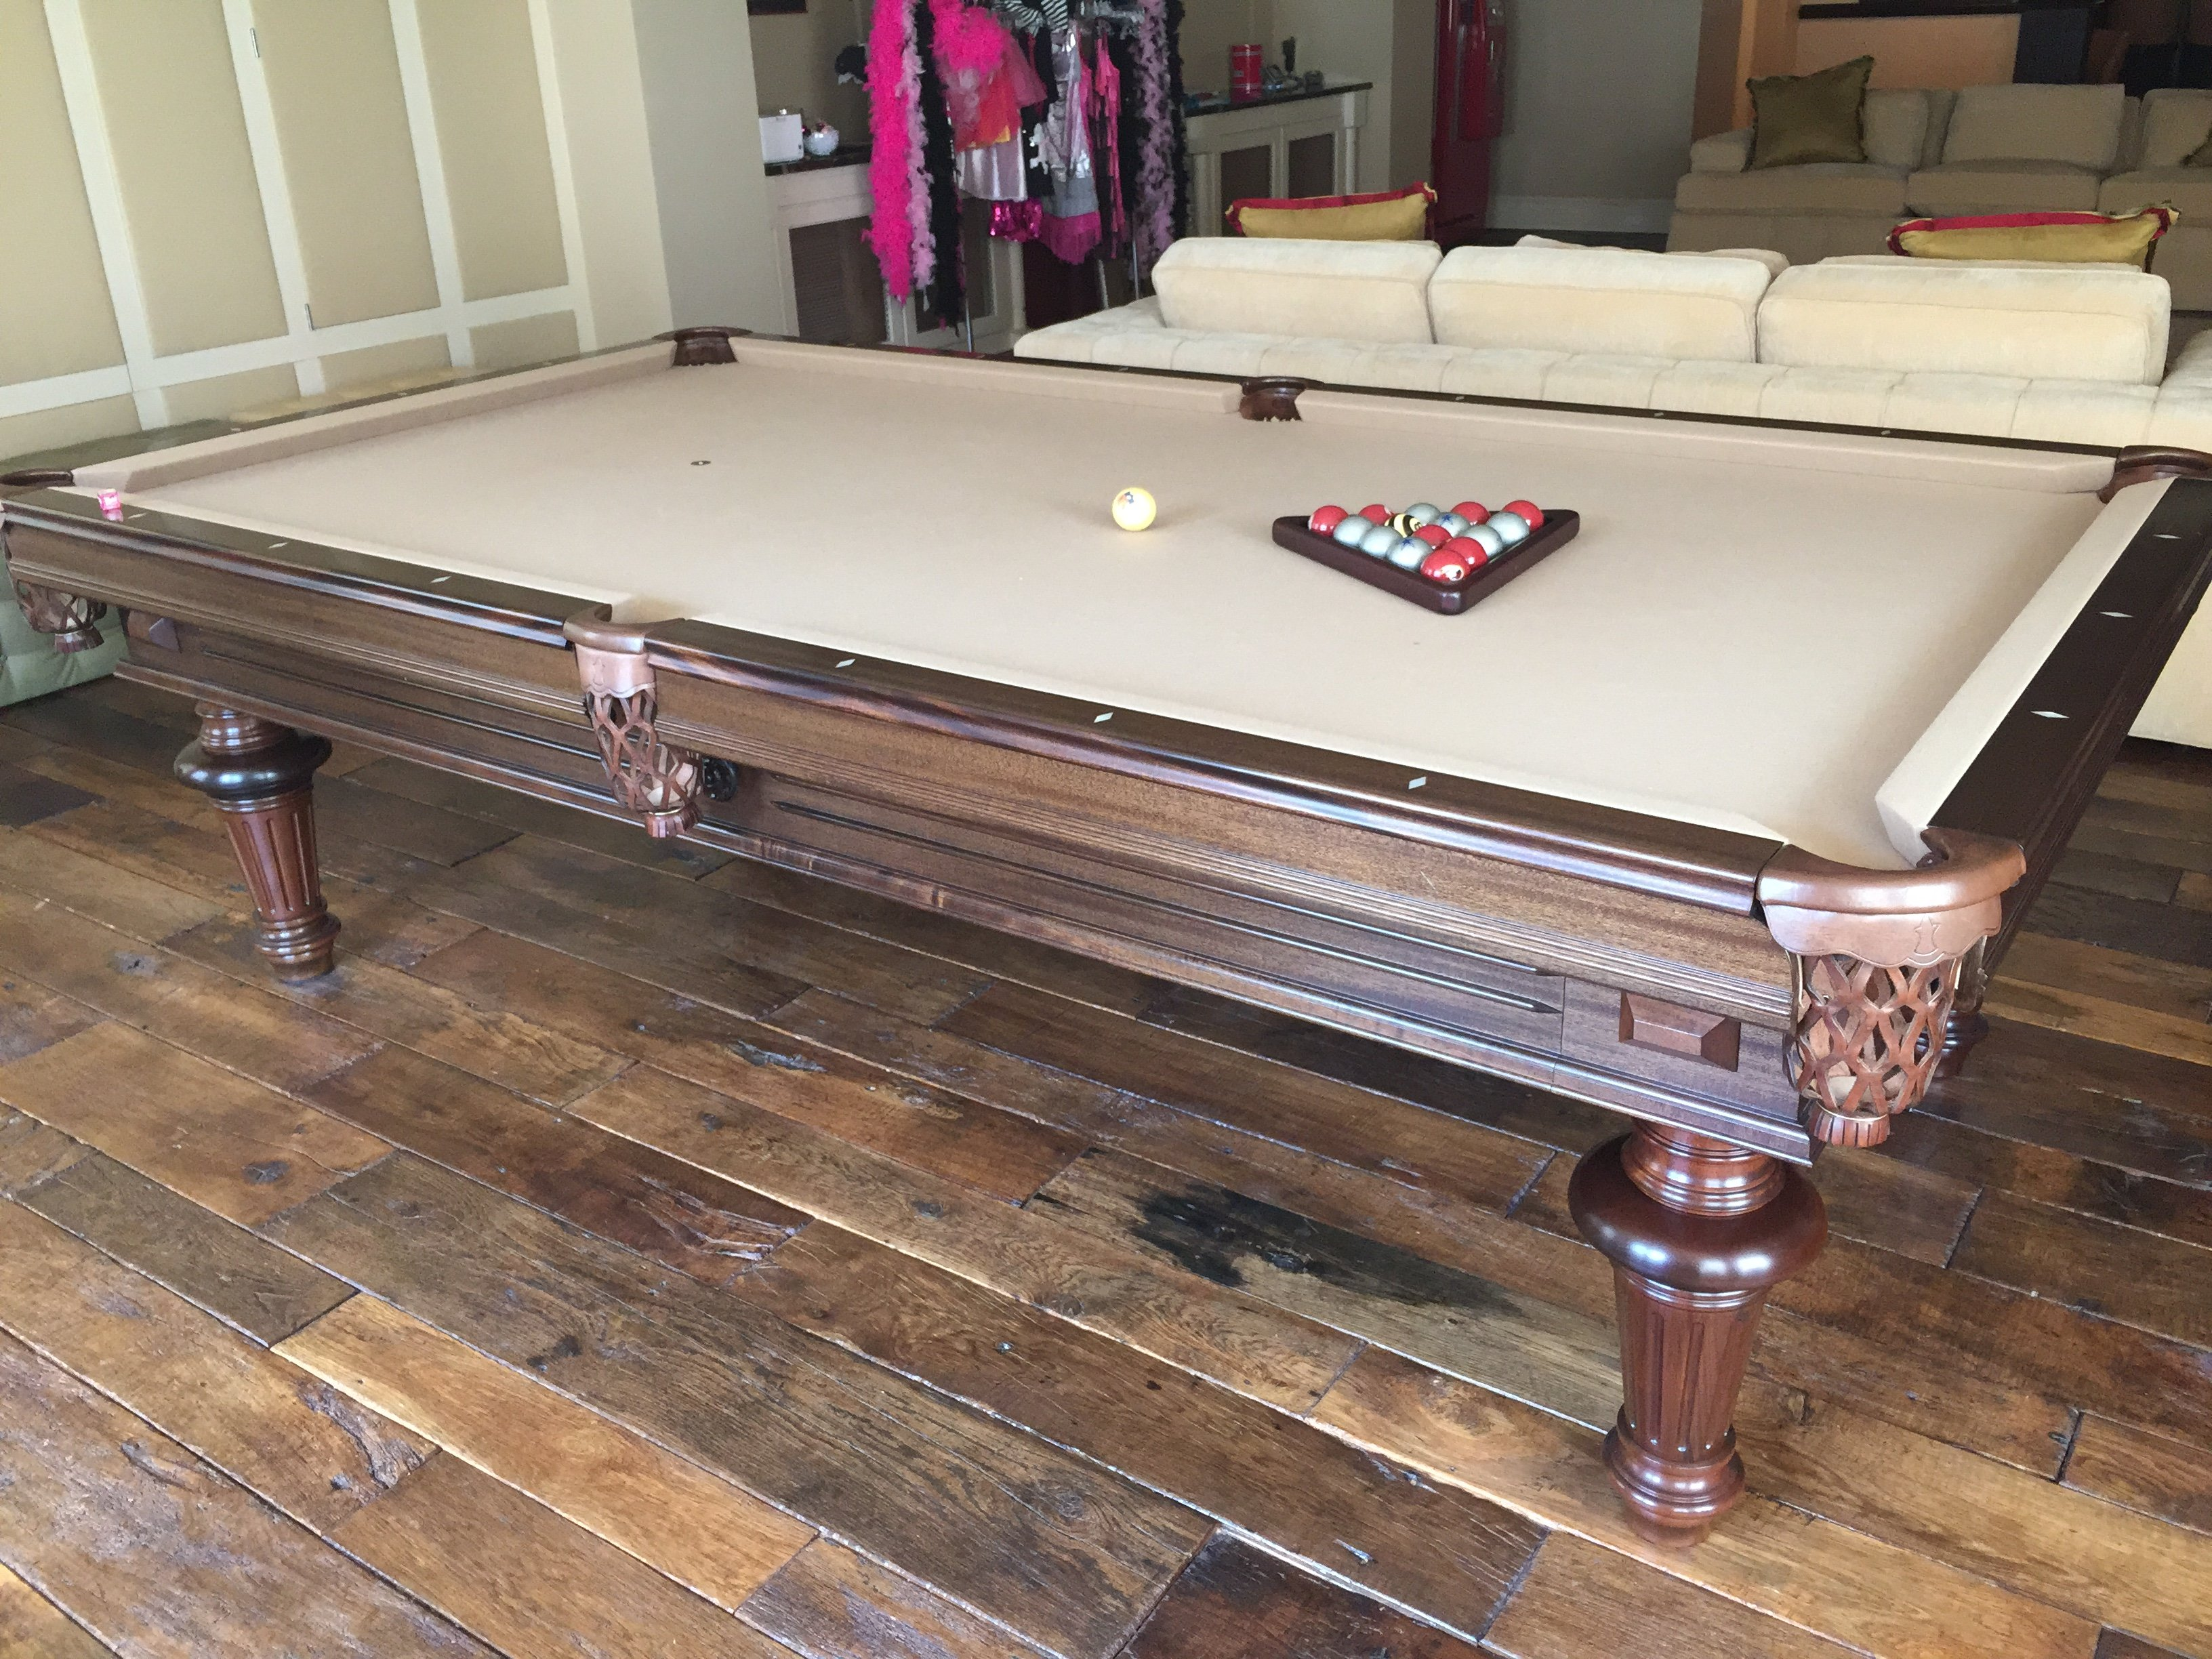 Pool Table Assembly Professionals Guaranteed Results - Pool table disassembly cost